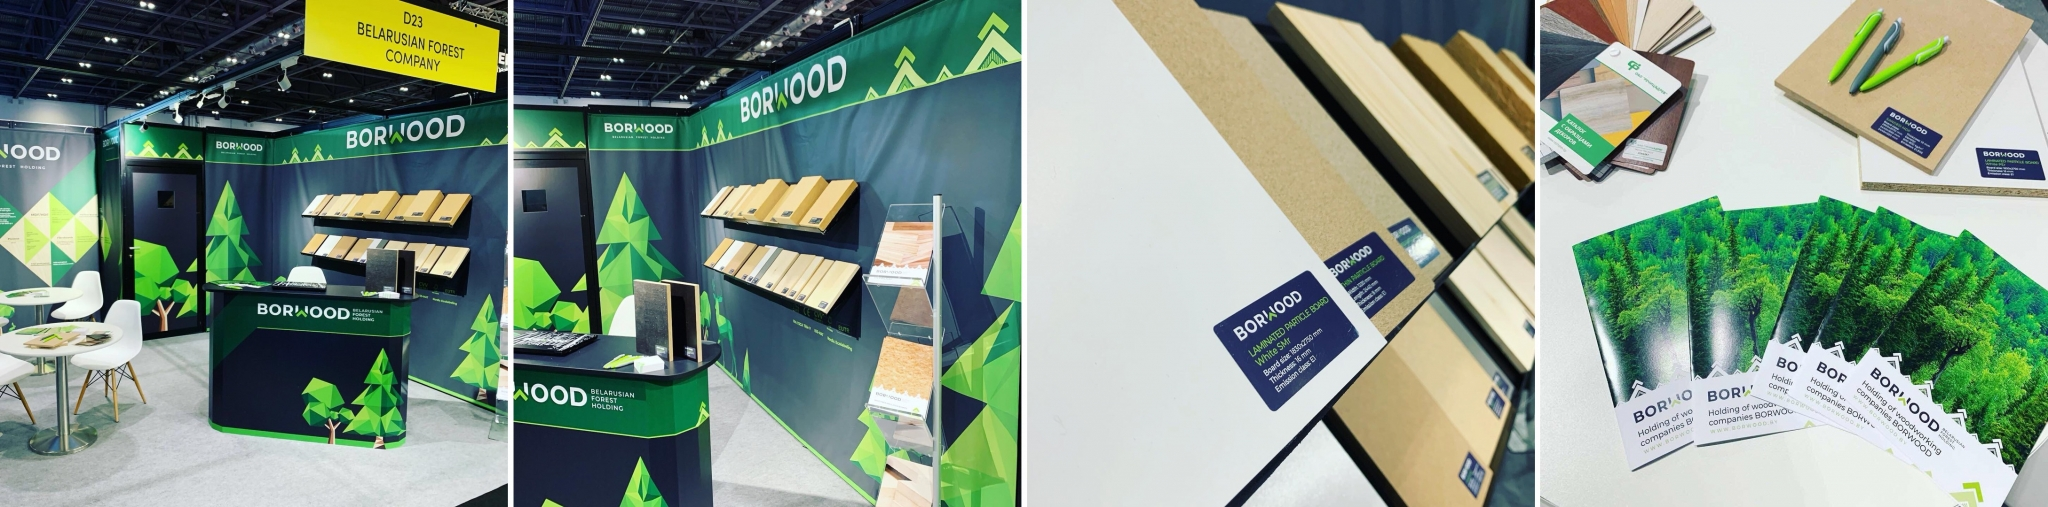 BORWOOD at Futurebuild exhibition_1.jpg